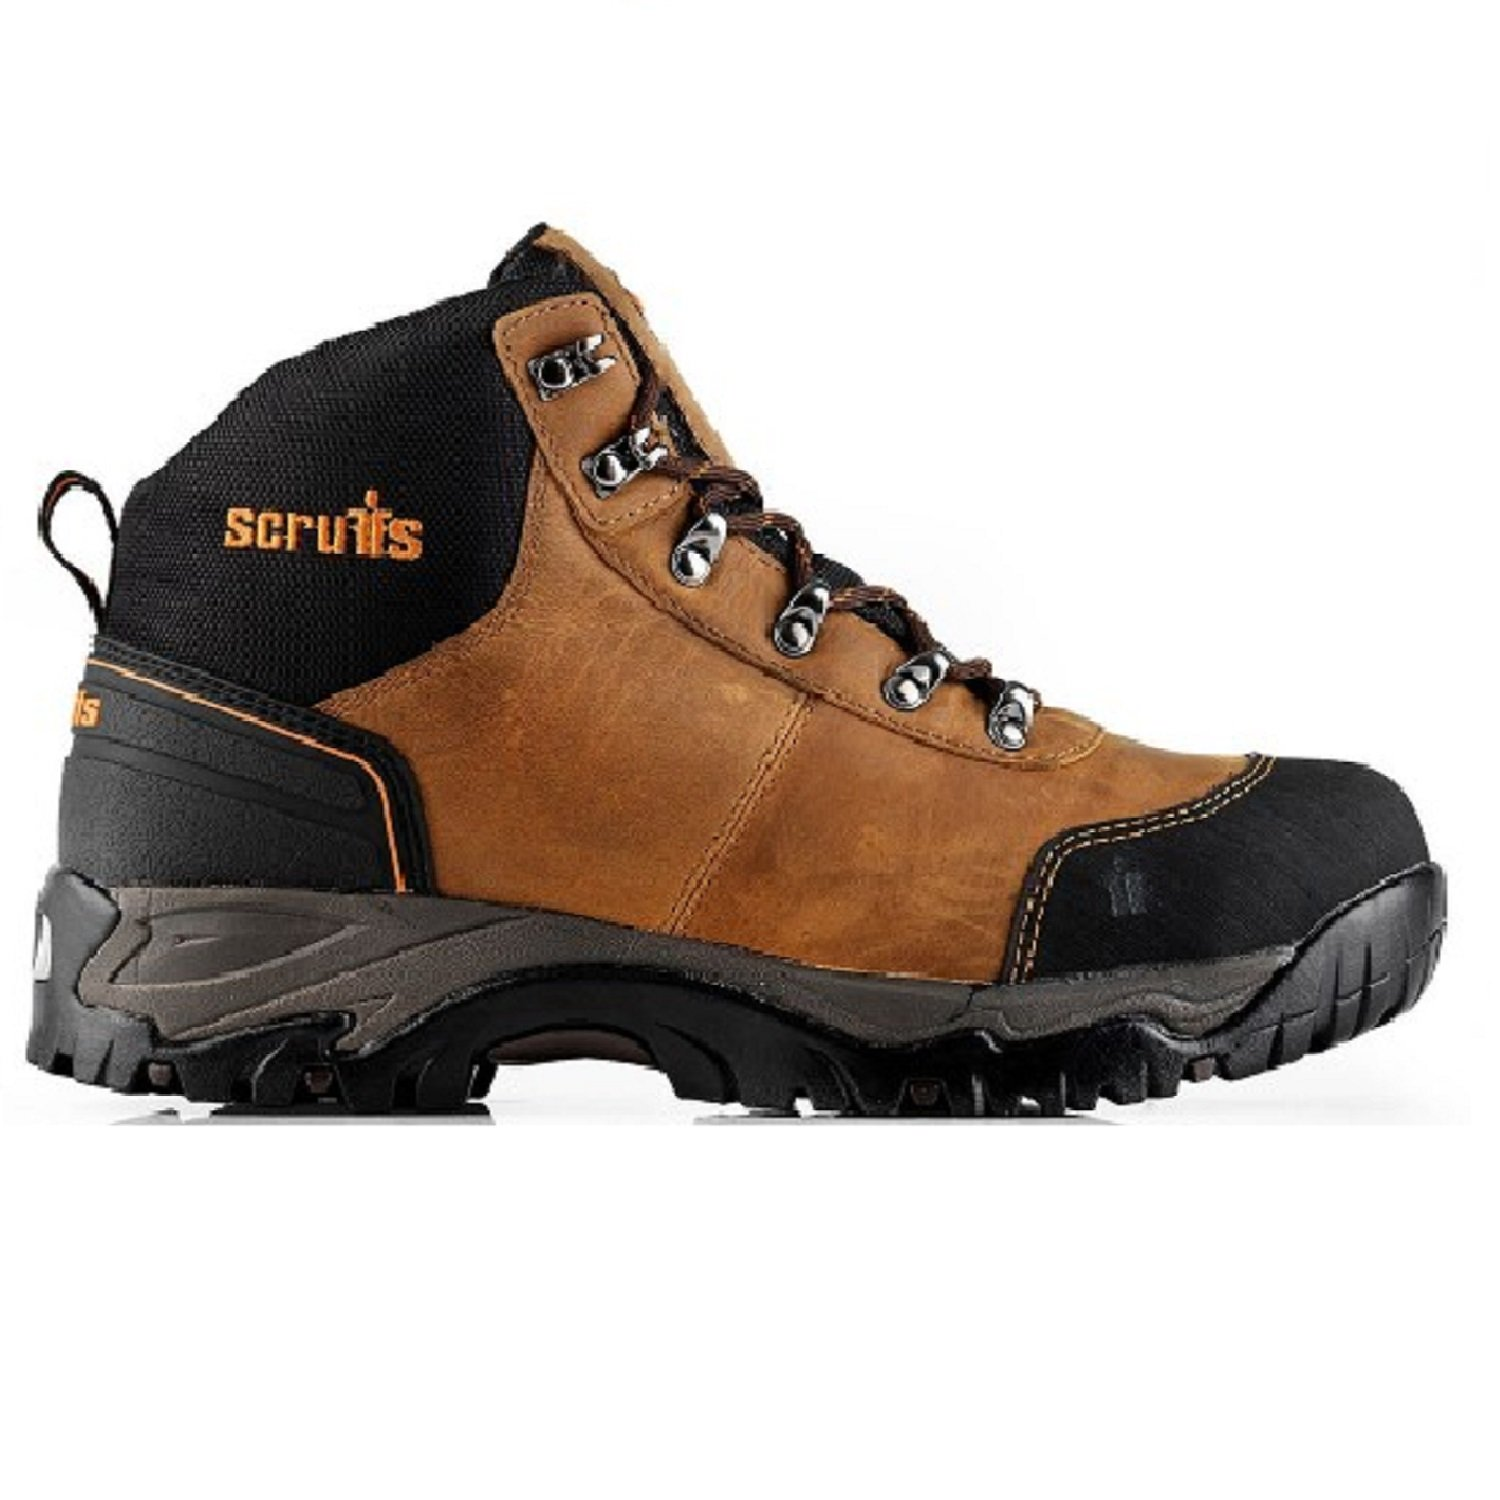 ef05bb19515 Scruffs Assault Safety Hiker Boots (Black or Brown) & Boot Socks